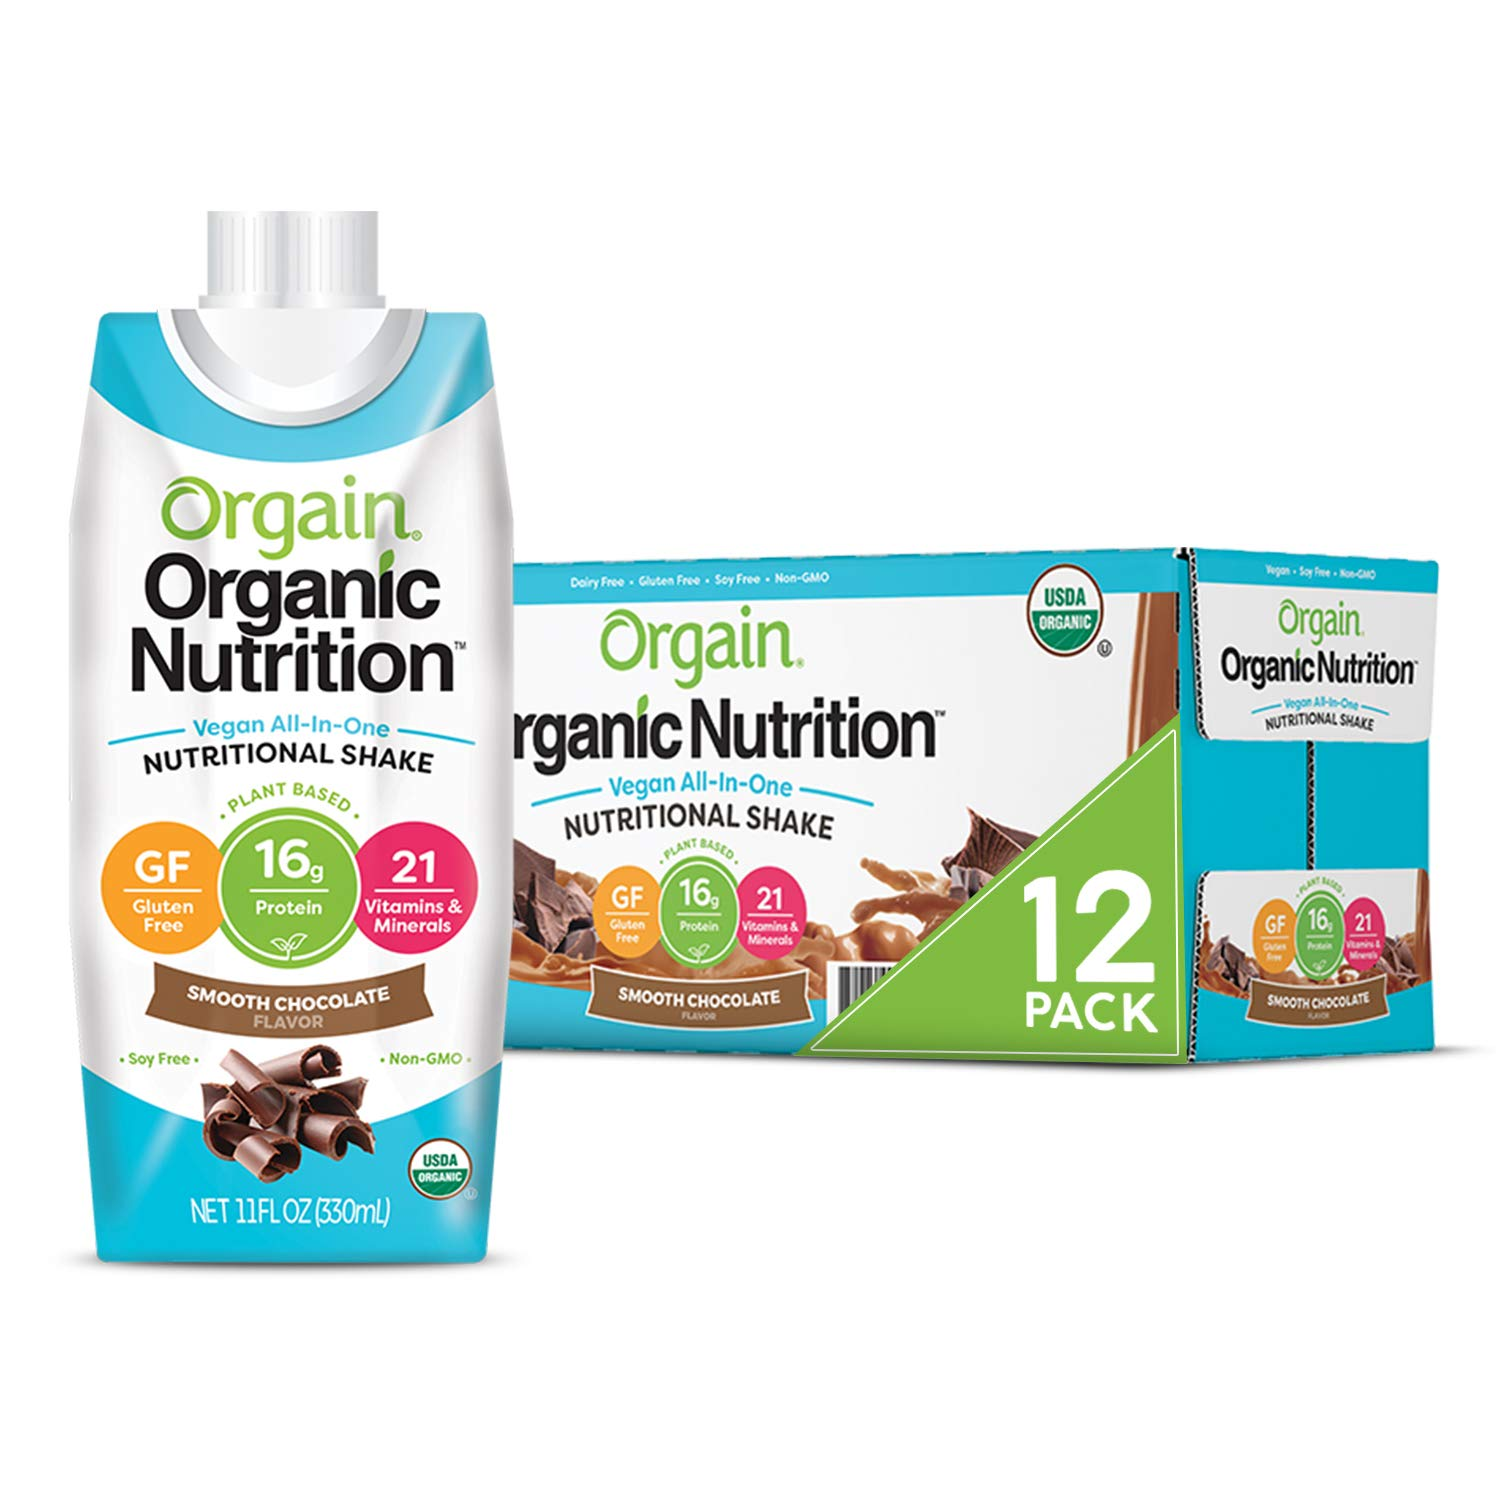 Orgain Organic Vegan Plant Based Nutritional Shake, Smooth Chocolate - Meal Replacement, 16g Protein, 21 Vitamins & Minerals, Dairy Free, Gluten Free, 11 Ounce, 12 Count (Packaging May Vary) : Grocery & Gourmet Food